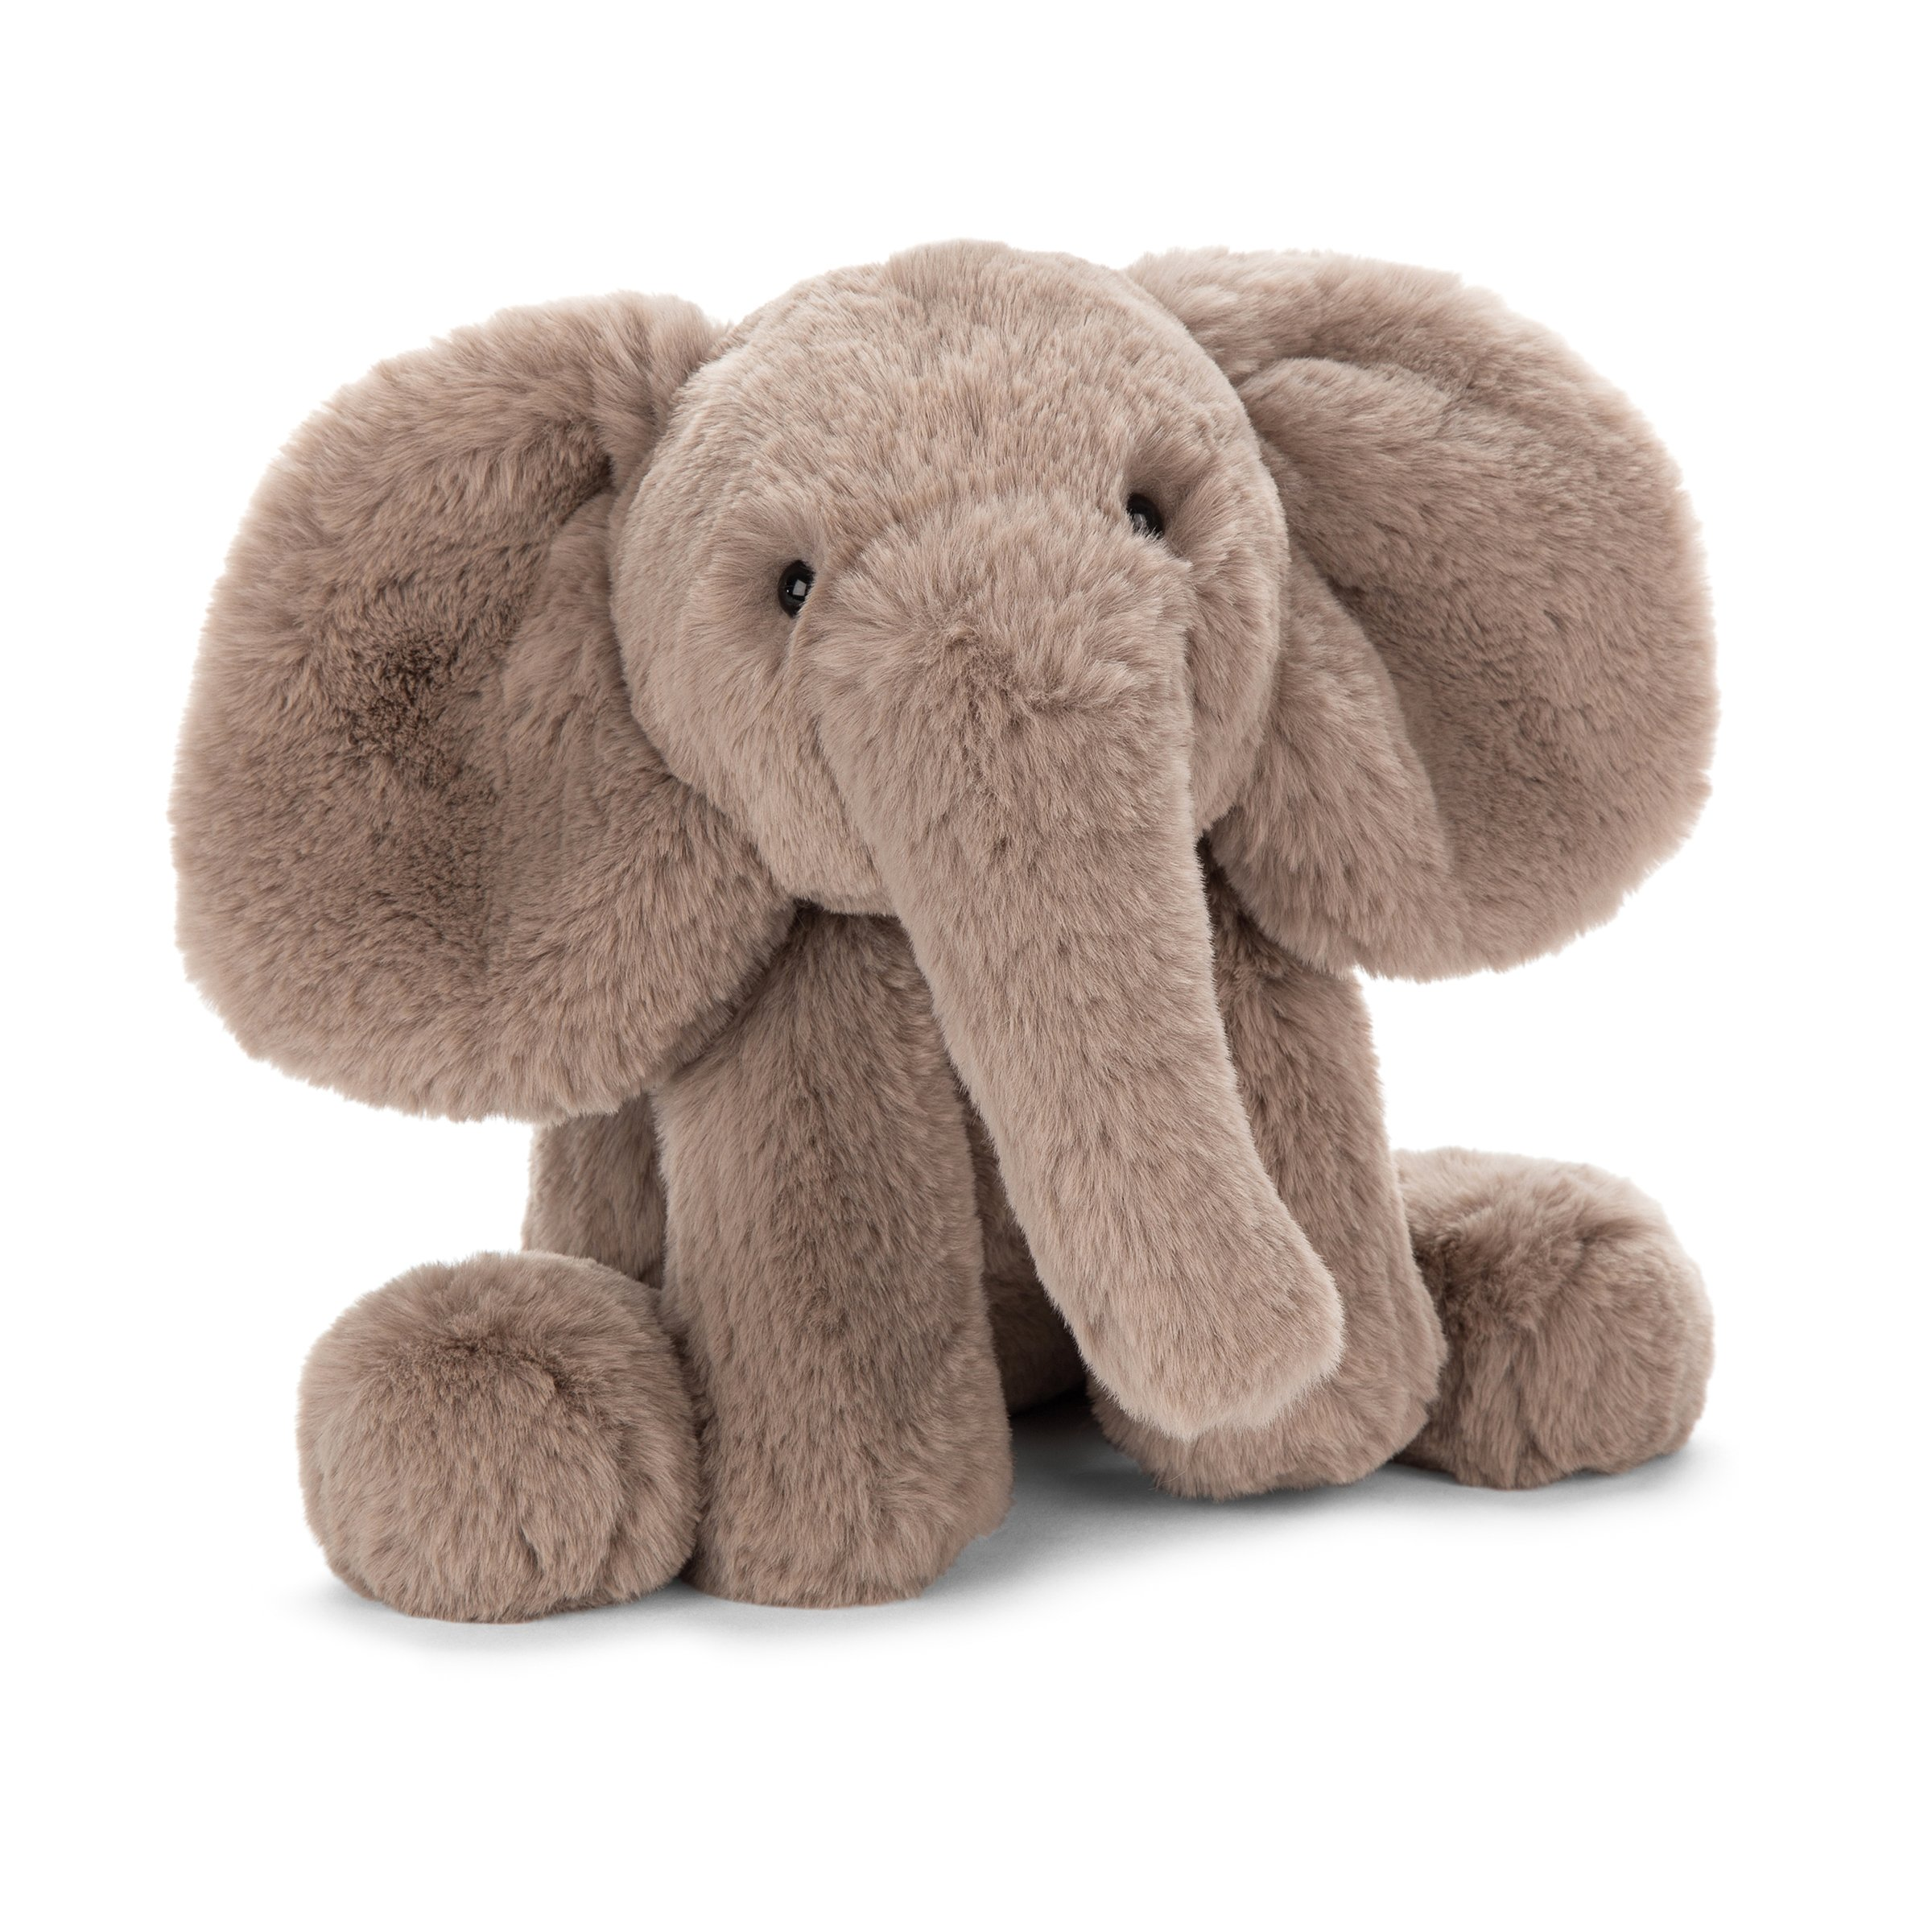 Jellycat Smudge Elephant Stuffed Animal, 14 inches by Jellycat